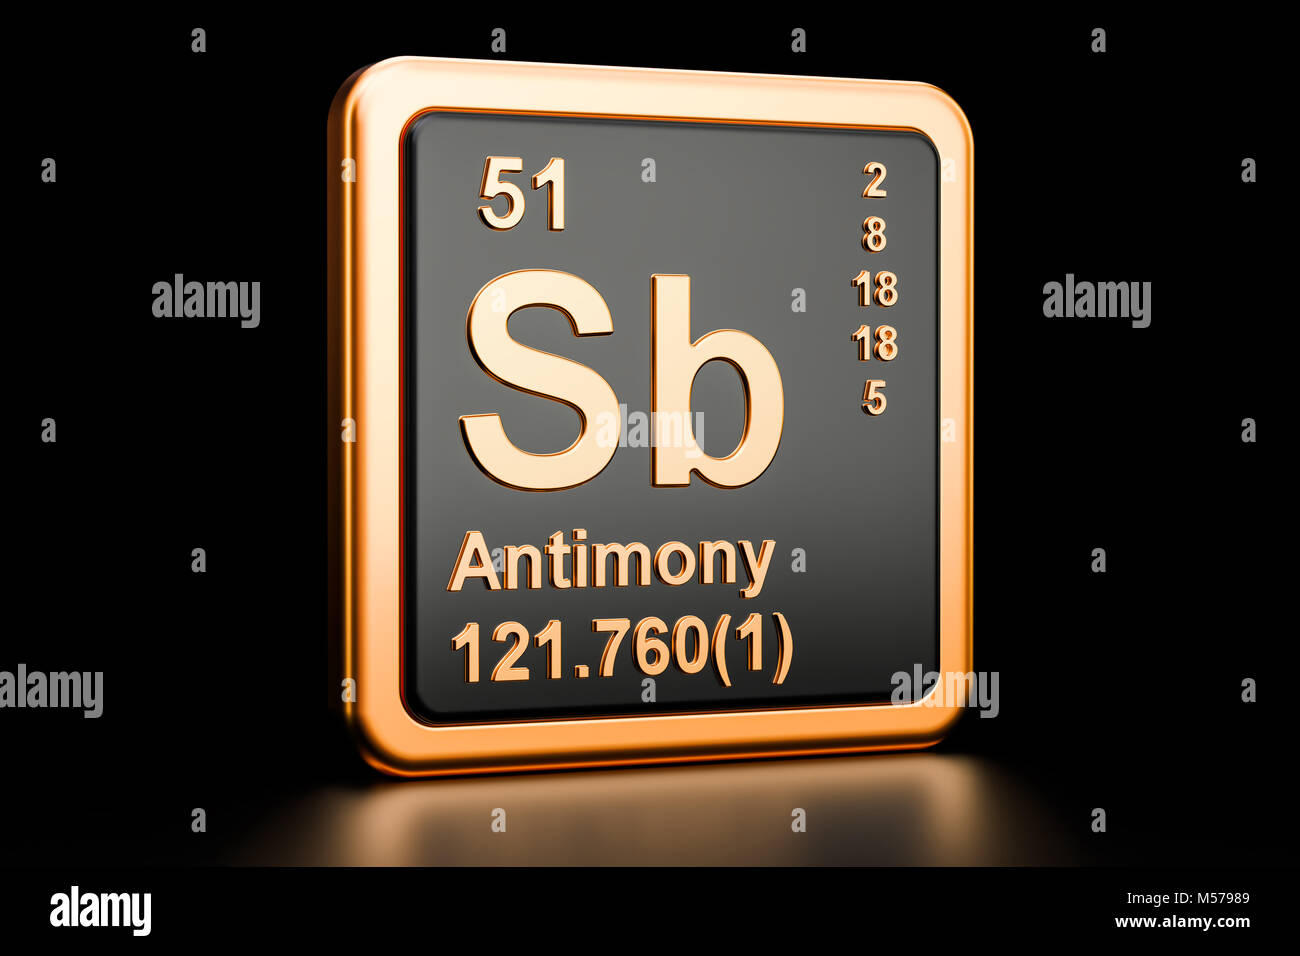 Stibium stock photos stibium stock images alamy antimony sb stibium chemical element 3d rendering isolated on black background stock image biocorpaavc Images